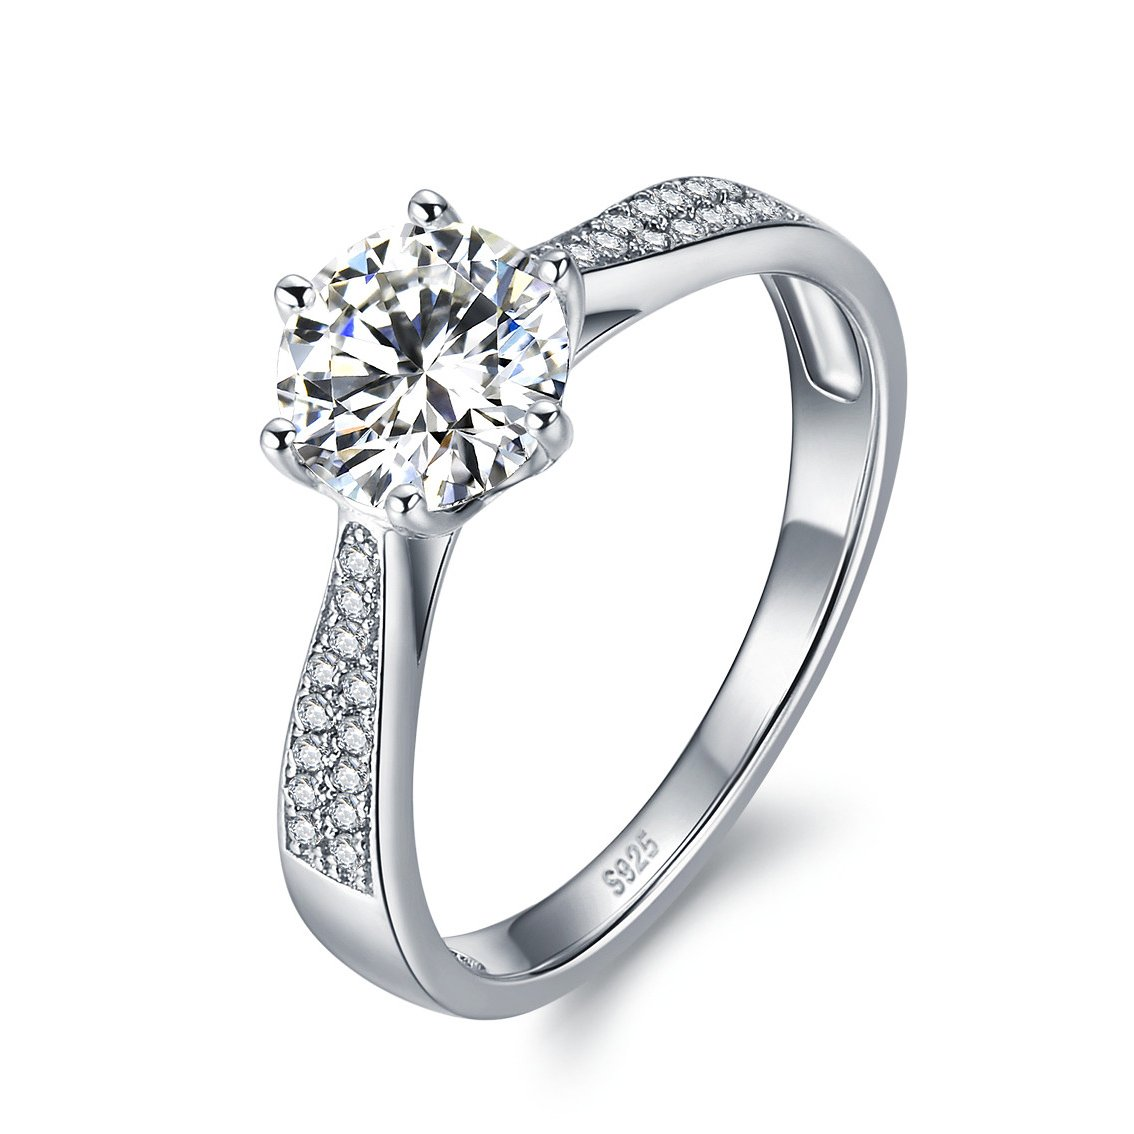 e3ddea8fb3c1e Solid 925 Sterling Silver Rings for Women Wedding or Engagement Jewellery  1ct Diamond Fire Cubic Zirconia